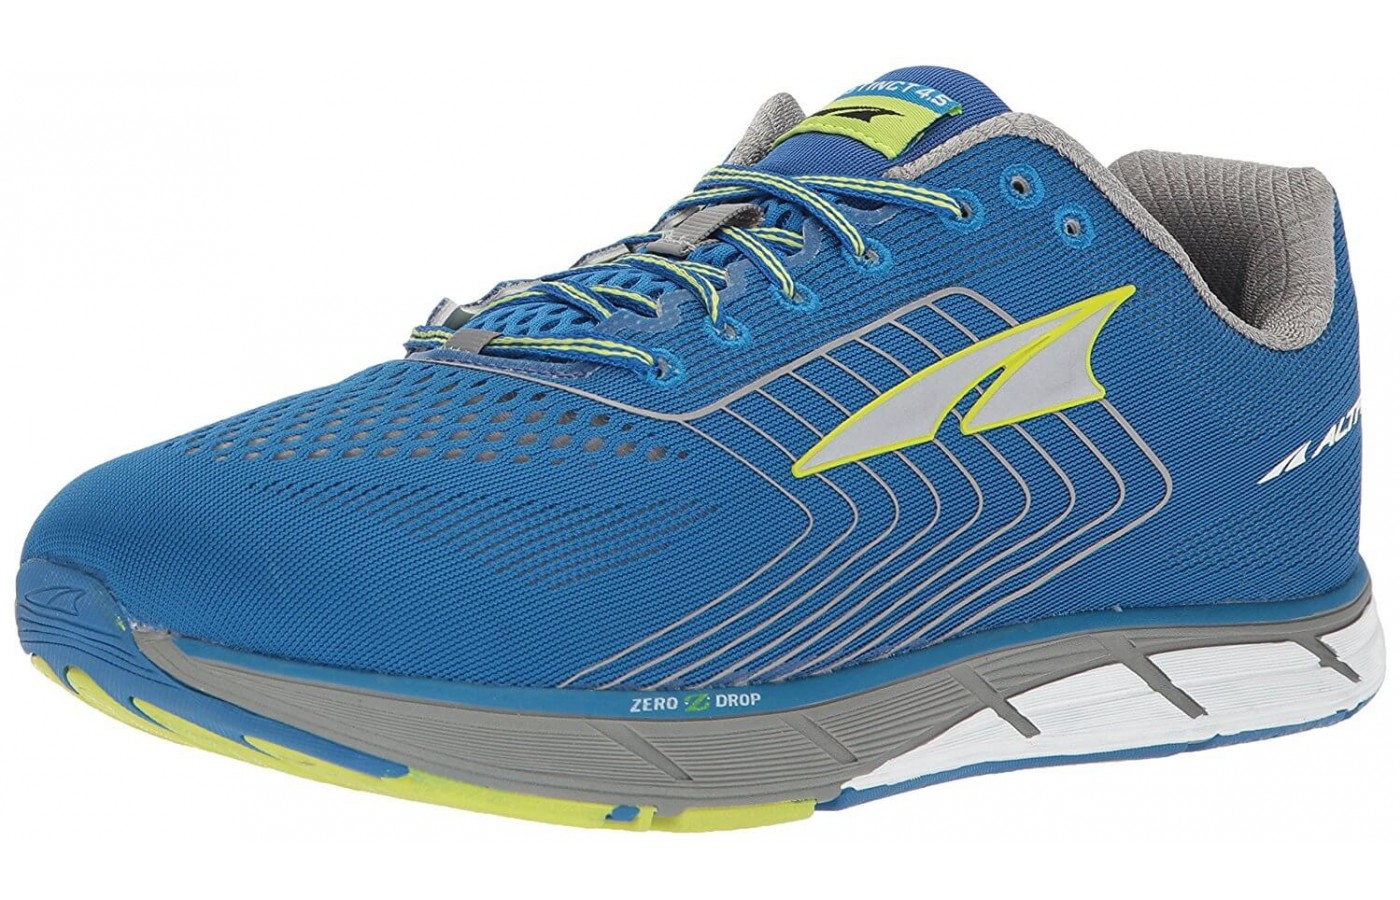 Lateral view of Altra Instinct 4.5